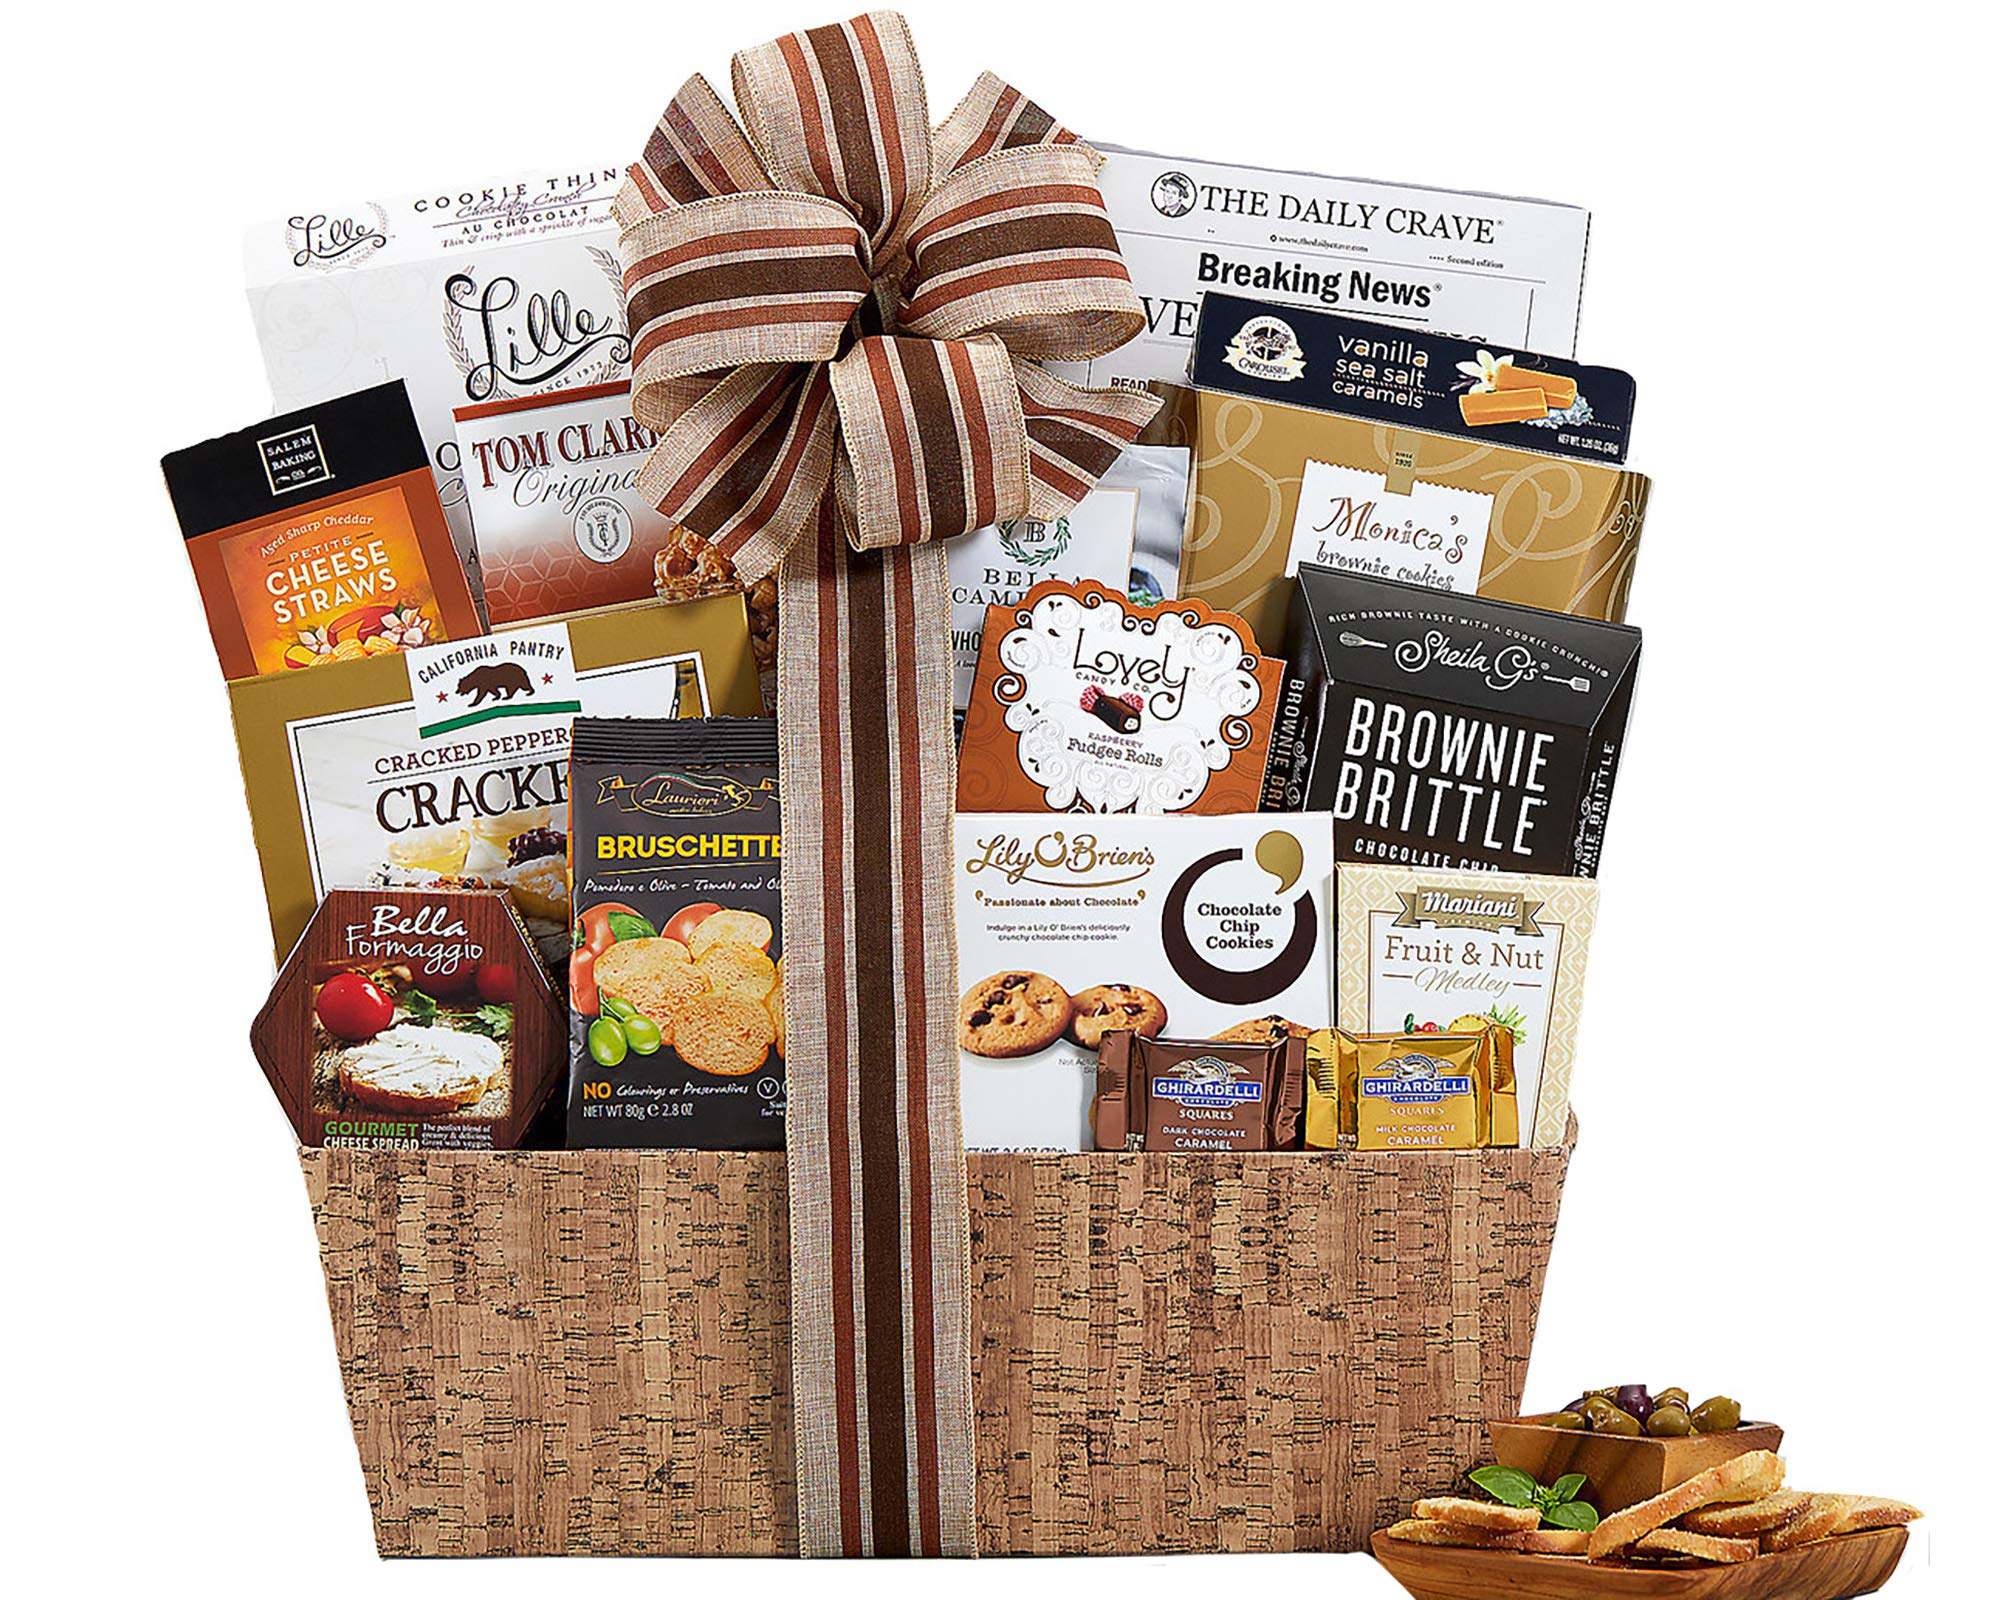 Wine Country Gift Baskets Sympathy Basket Heartfelt Thoughts Our Sincere Condolences Thinking Of You In Times Of Sorrow Bereavement Grief Elegant Gourmet Food Gift Basket